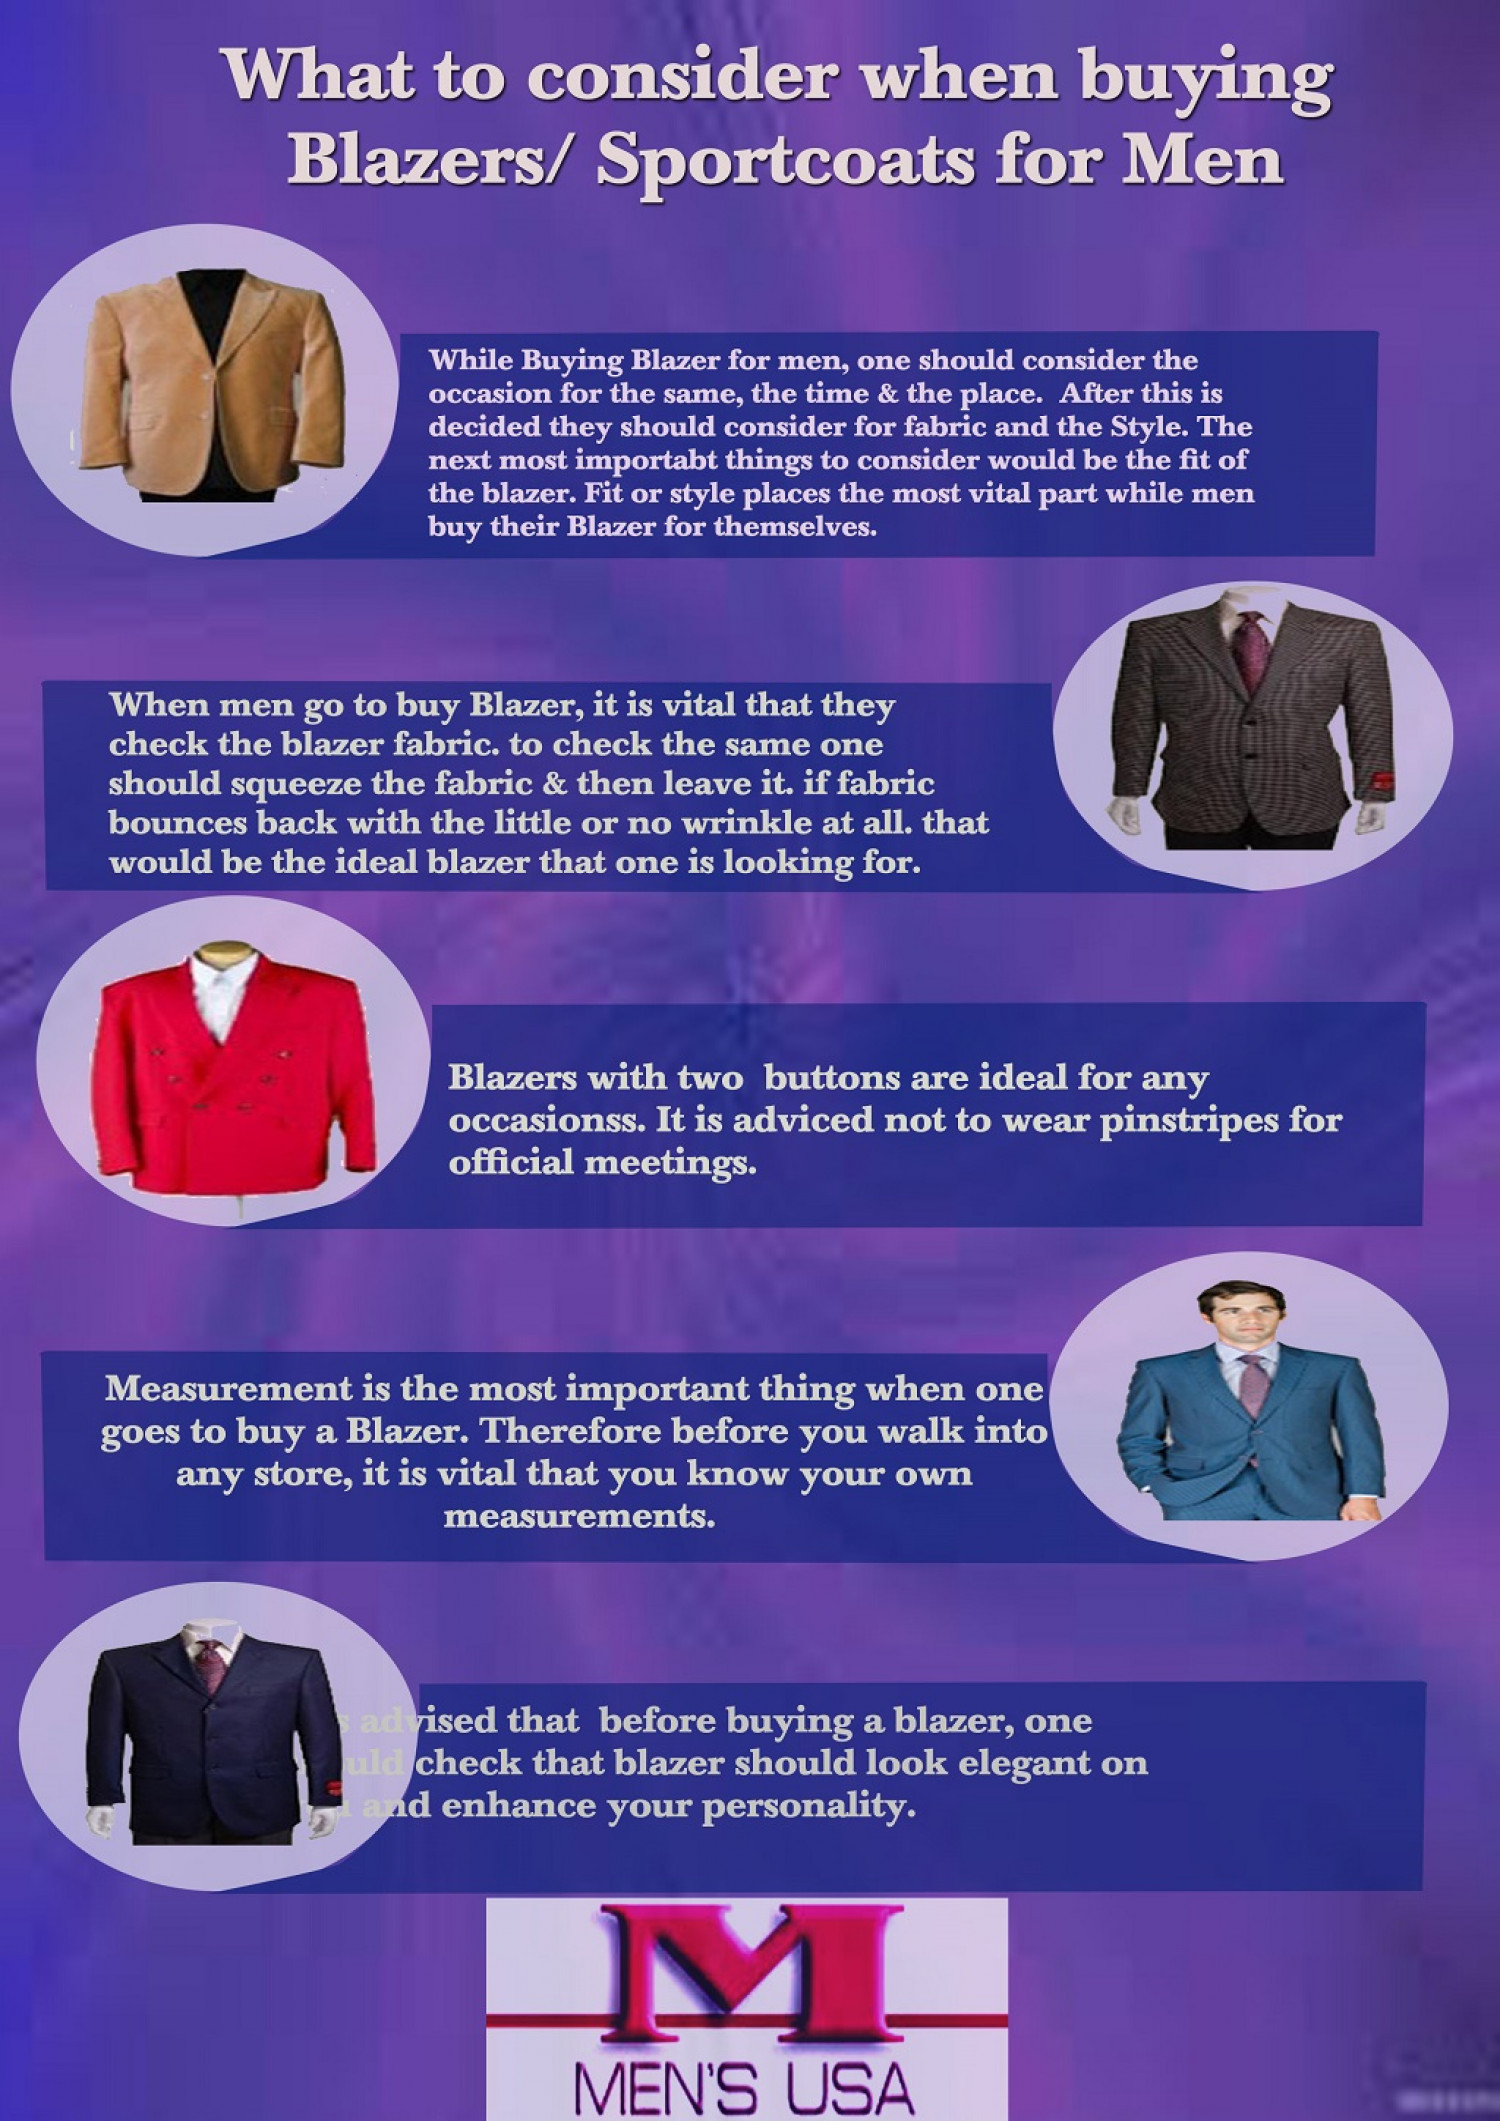 What To Consider When Buying Men's Blazers Infographic